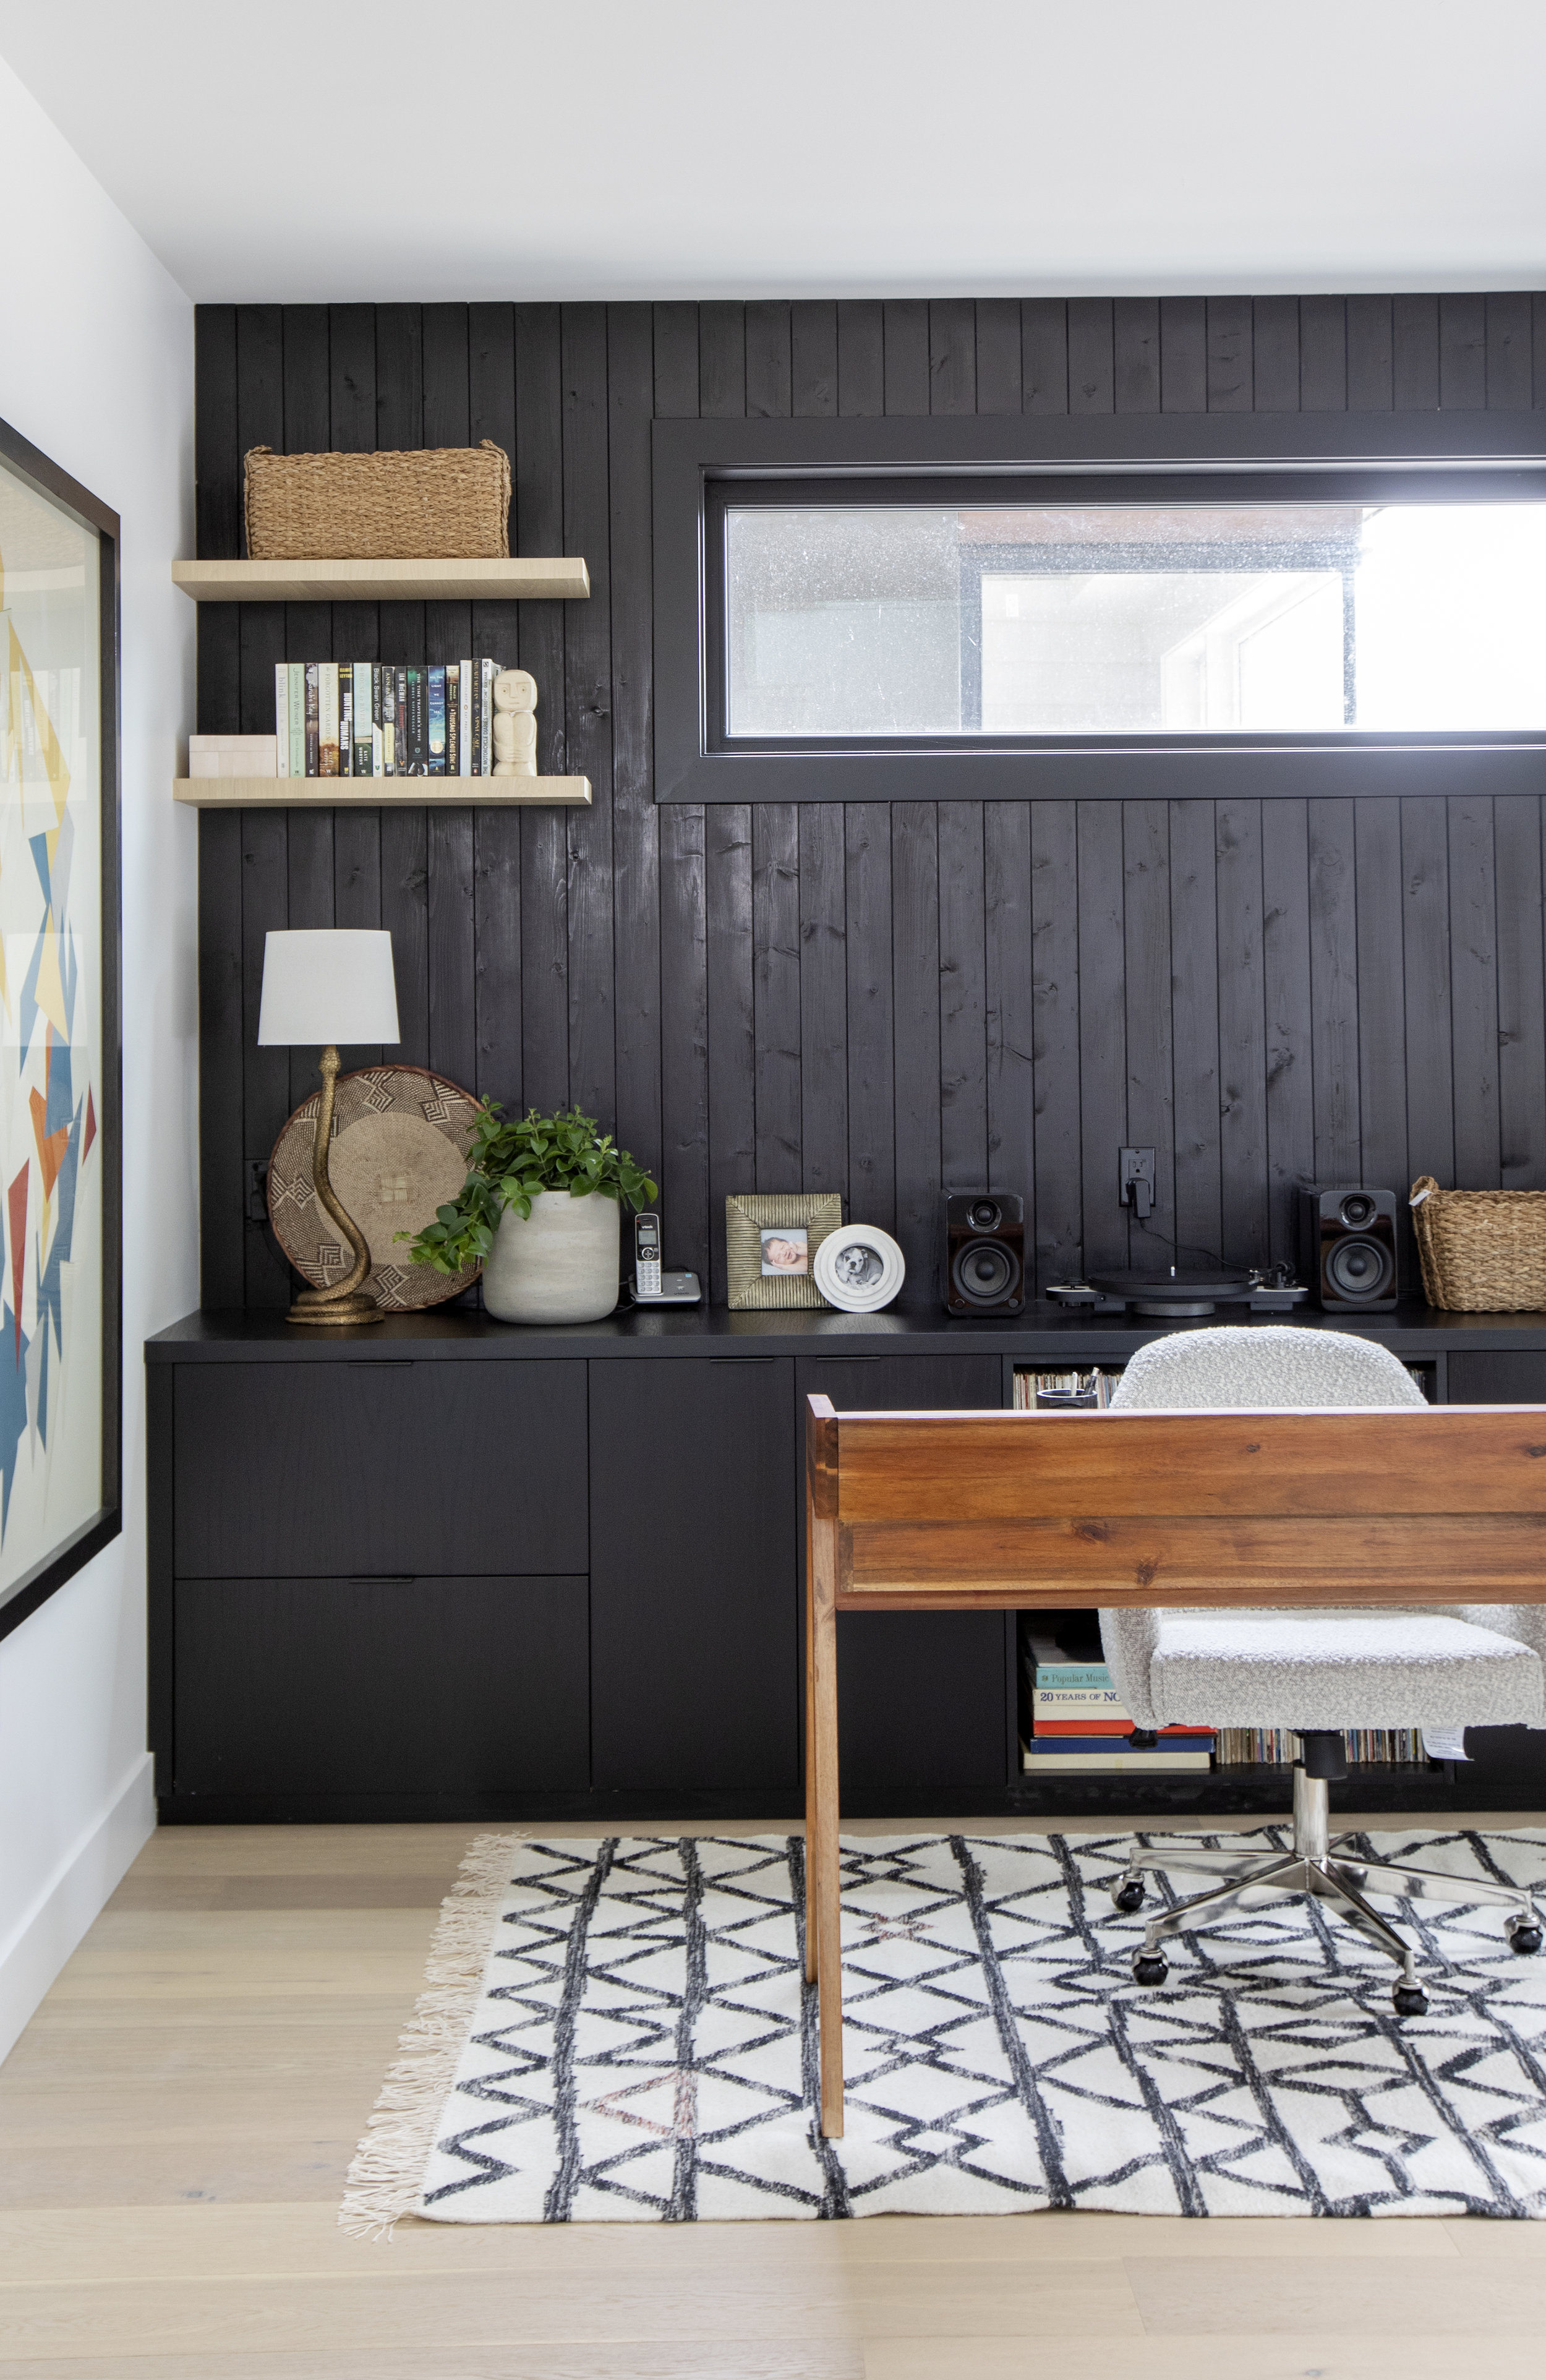 The study of East 13th Street has a dark panel accent wall behind a wooden writing desk.